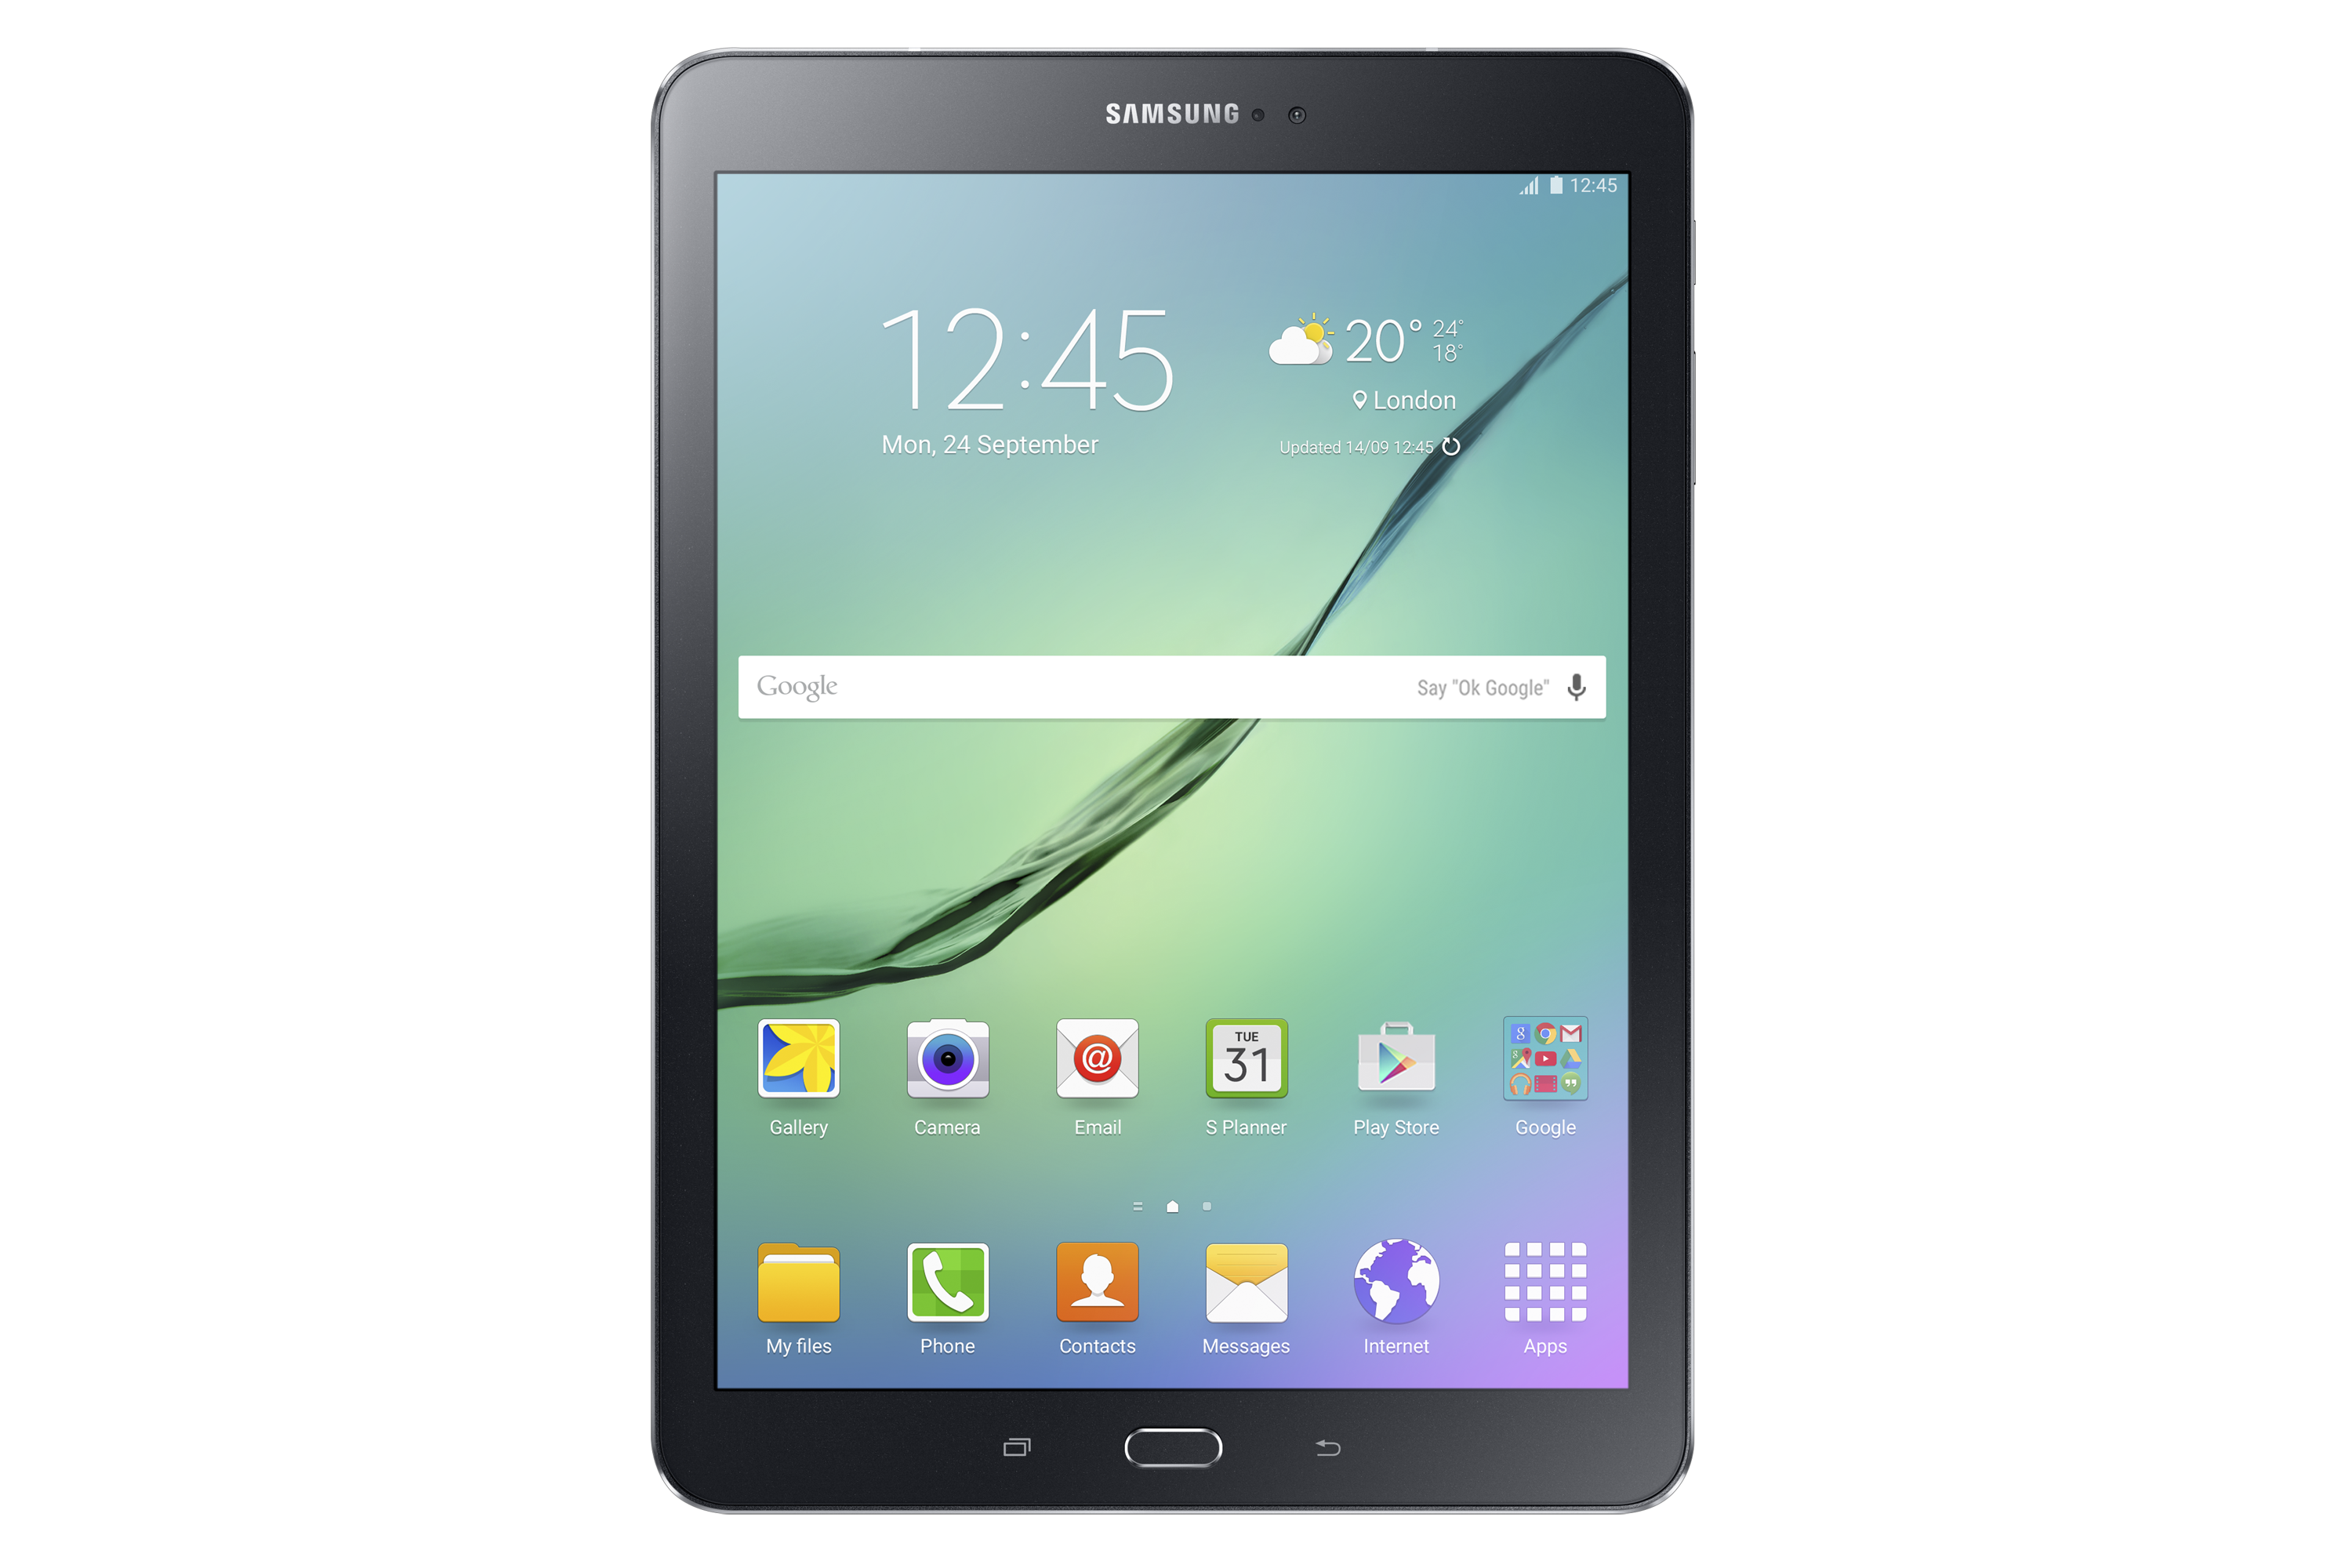 Galaxy Tab S2 models will officially be launching next month